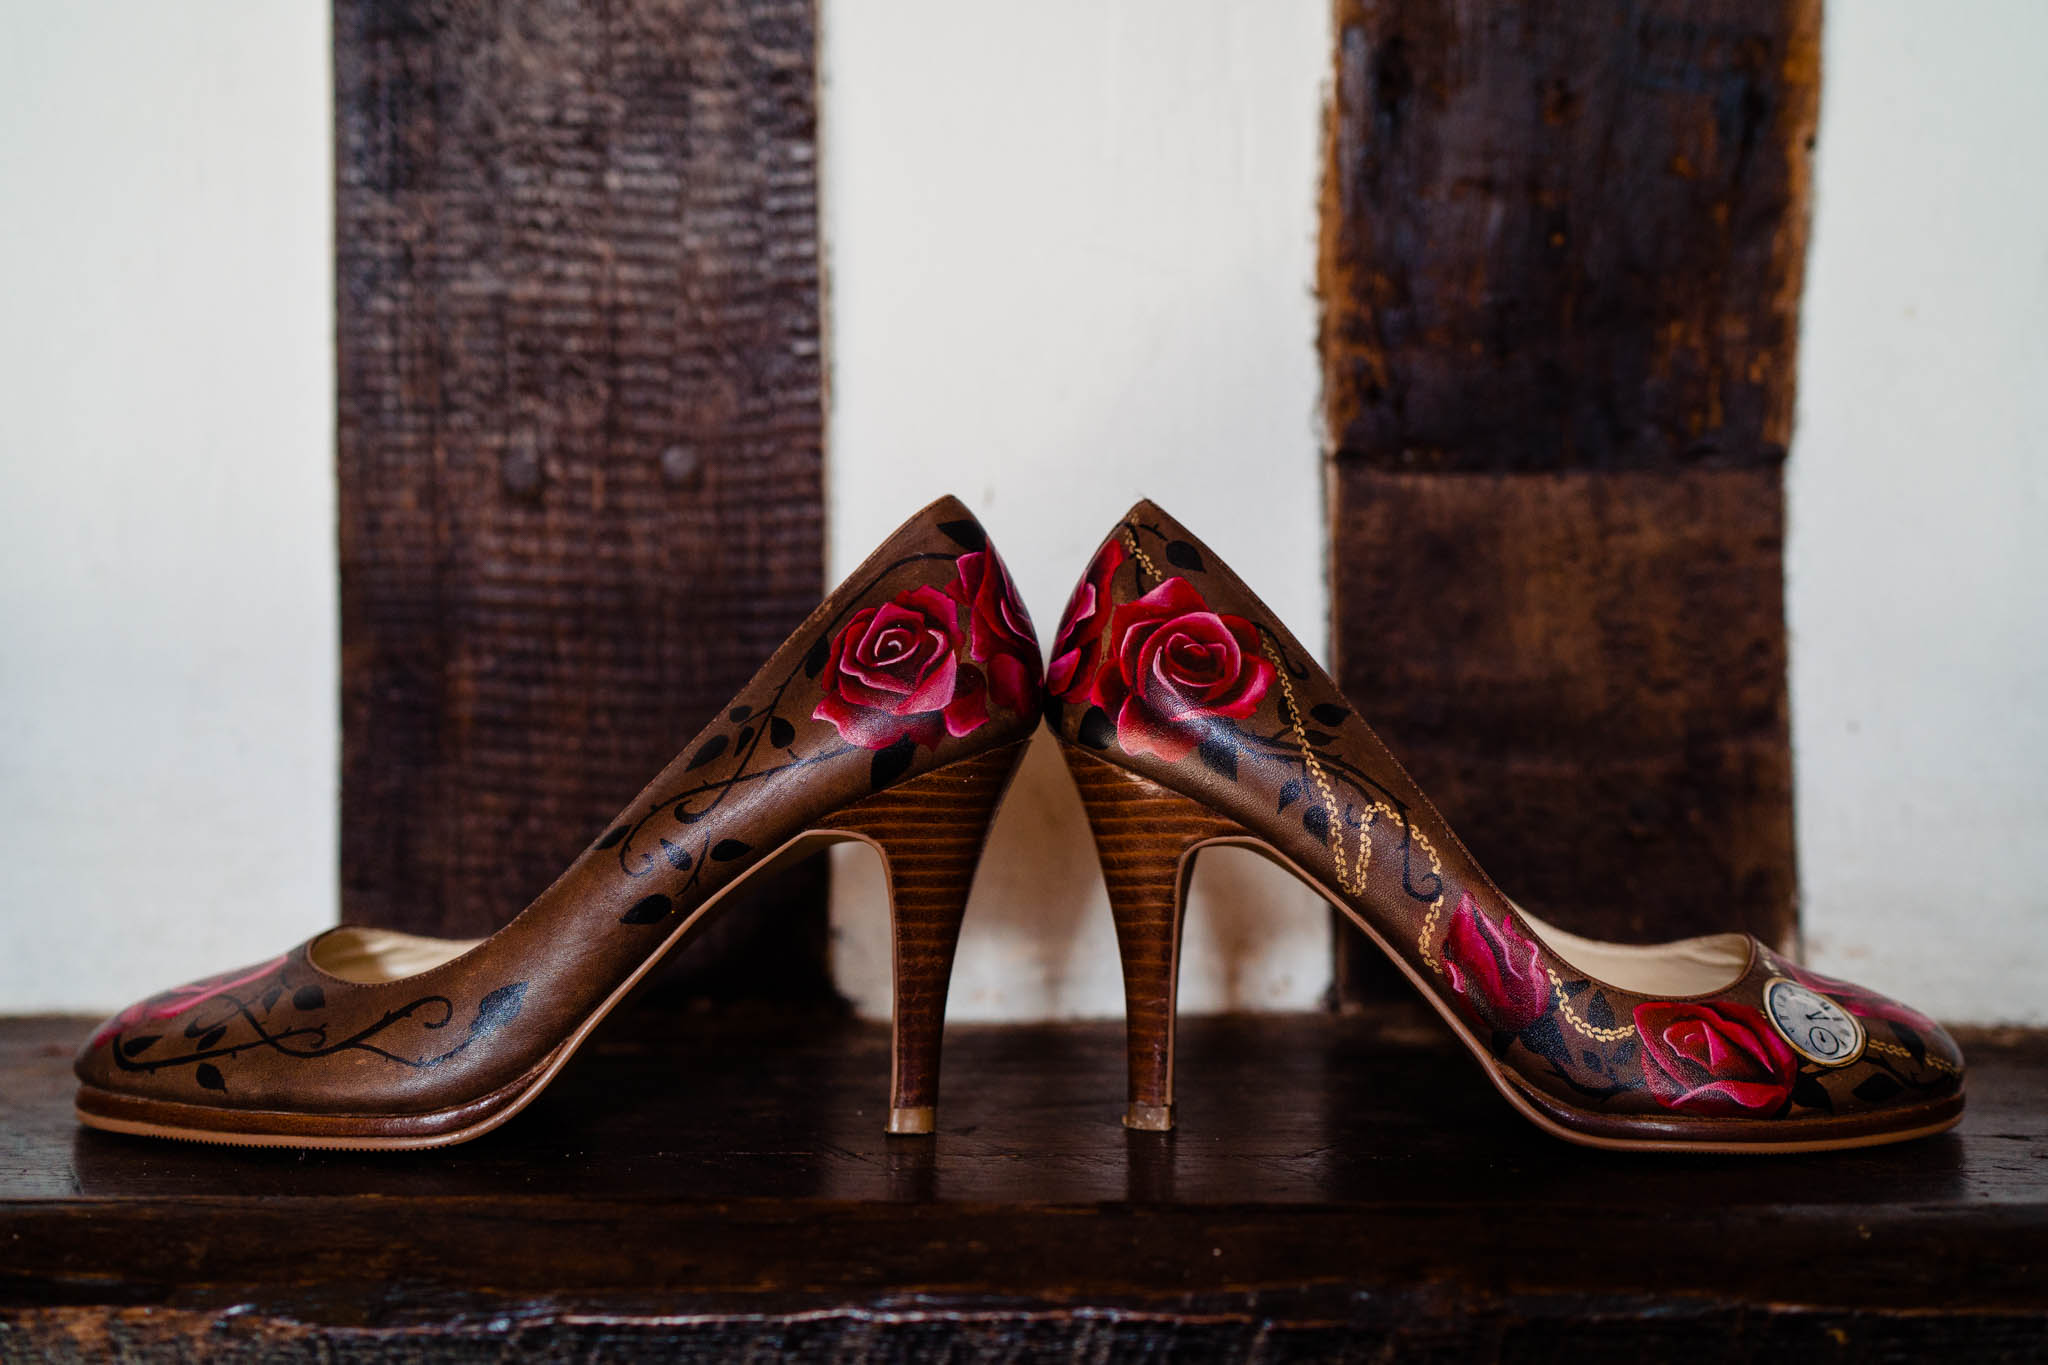 hand painted wedding shoes - bespoke wedding shoes with roses